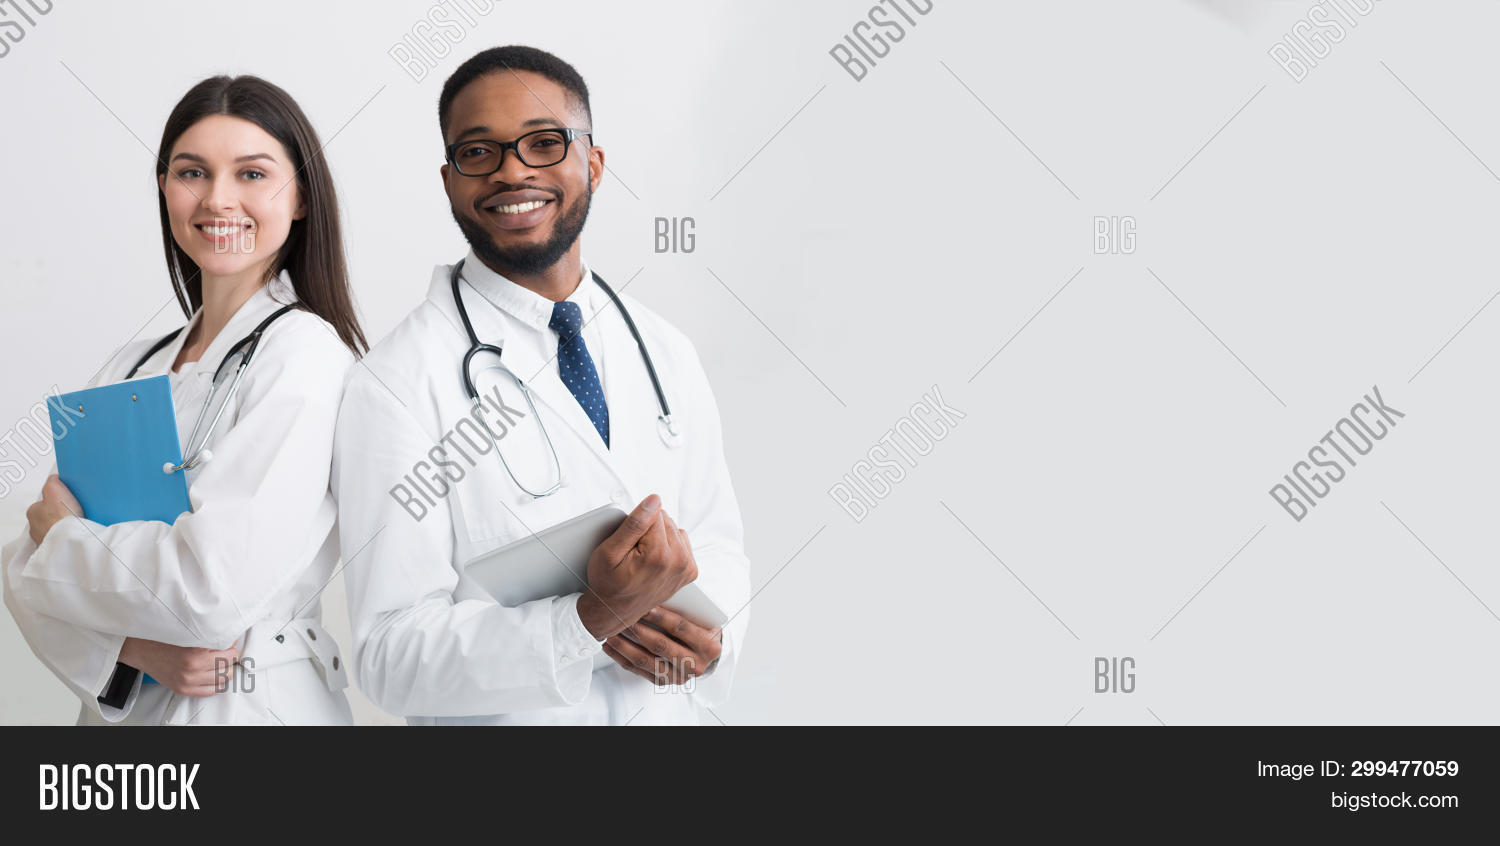 african,afro,background,black,clinic,coat,confident,dentist,diverse,doctors,excellent,gesturing,gray,hands,happy,health,healthcare,hospital,intelligent,job,male,man,medic,medicine,modern,panorama,pediatrician,people,perfect,practitioner,professional,showing,smiling,specialist,stethoscope,successful,surgeon,therapist,toothy,two,uniform,white,woman,work,young